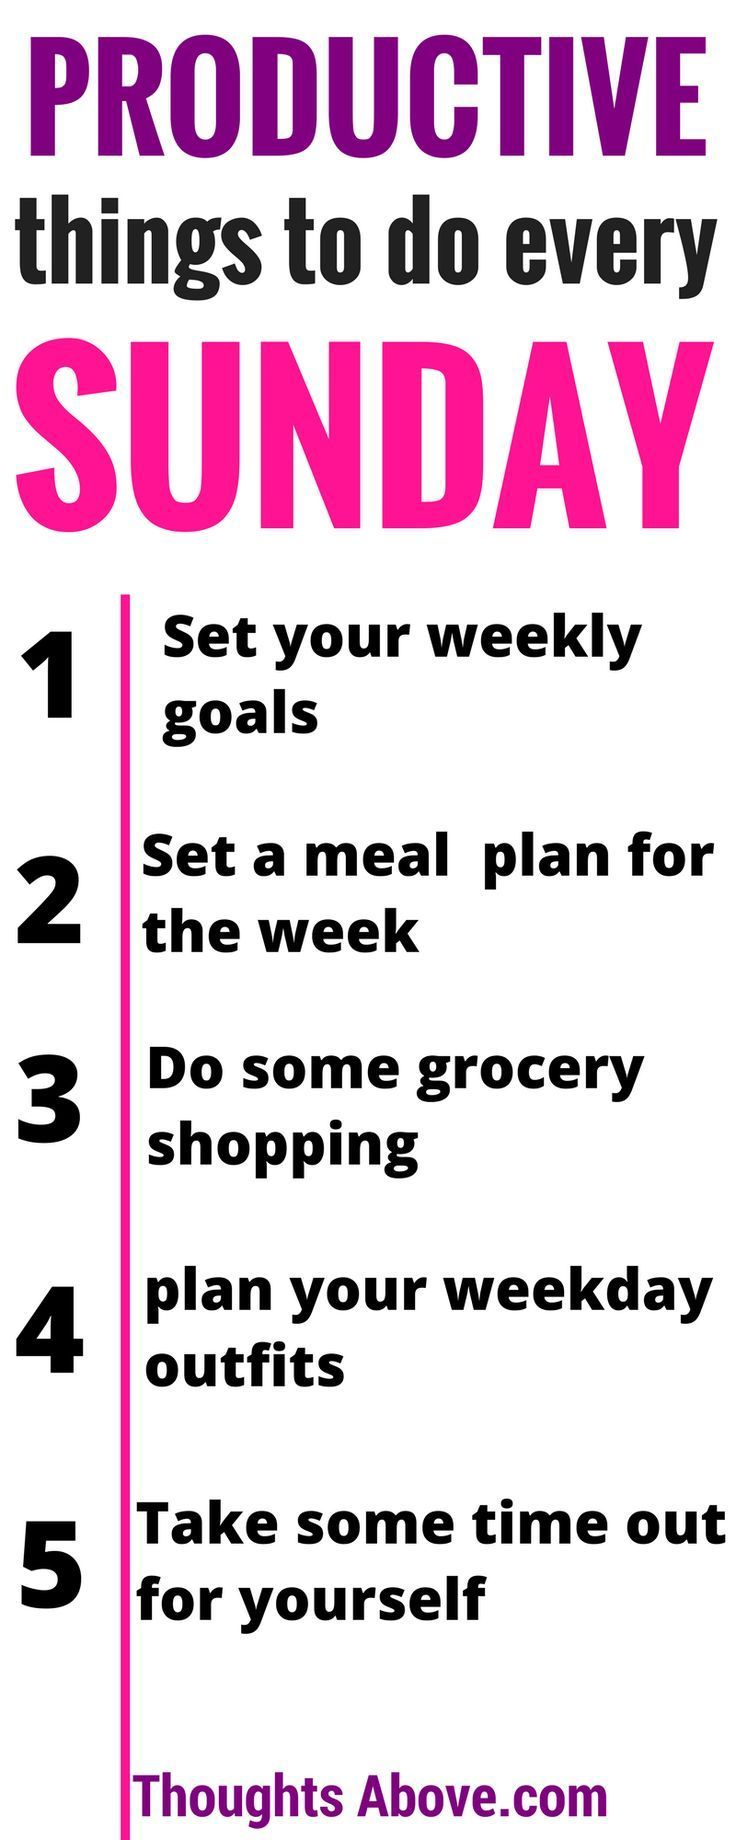 This article gave me a step-by-step Sunday routine/Sunday ideas/no spend weekend activities. That will set me up for for a super productive week tips. I'm happy I found this awesome I'm saving it for later.